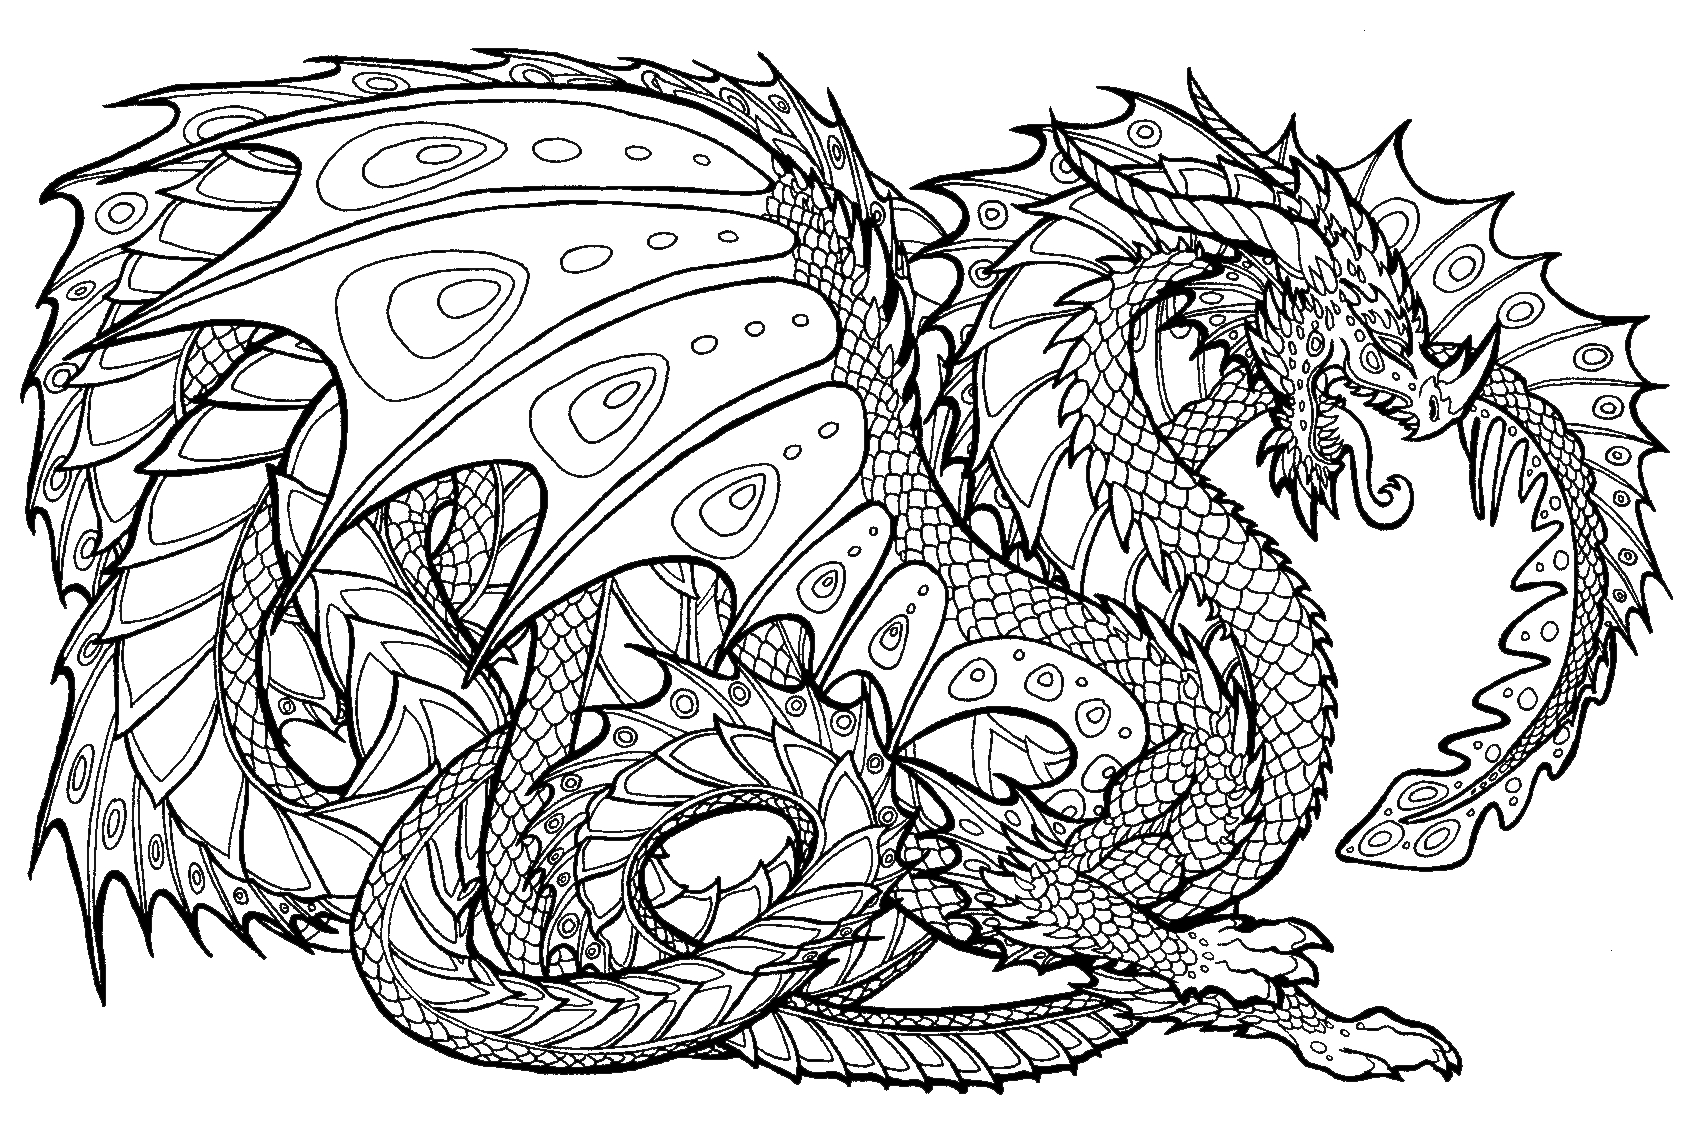 Chinese Dragon Coloring Pages  Download 8j - Free Download